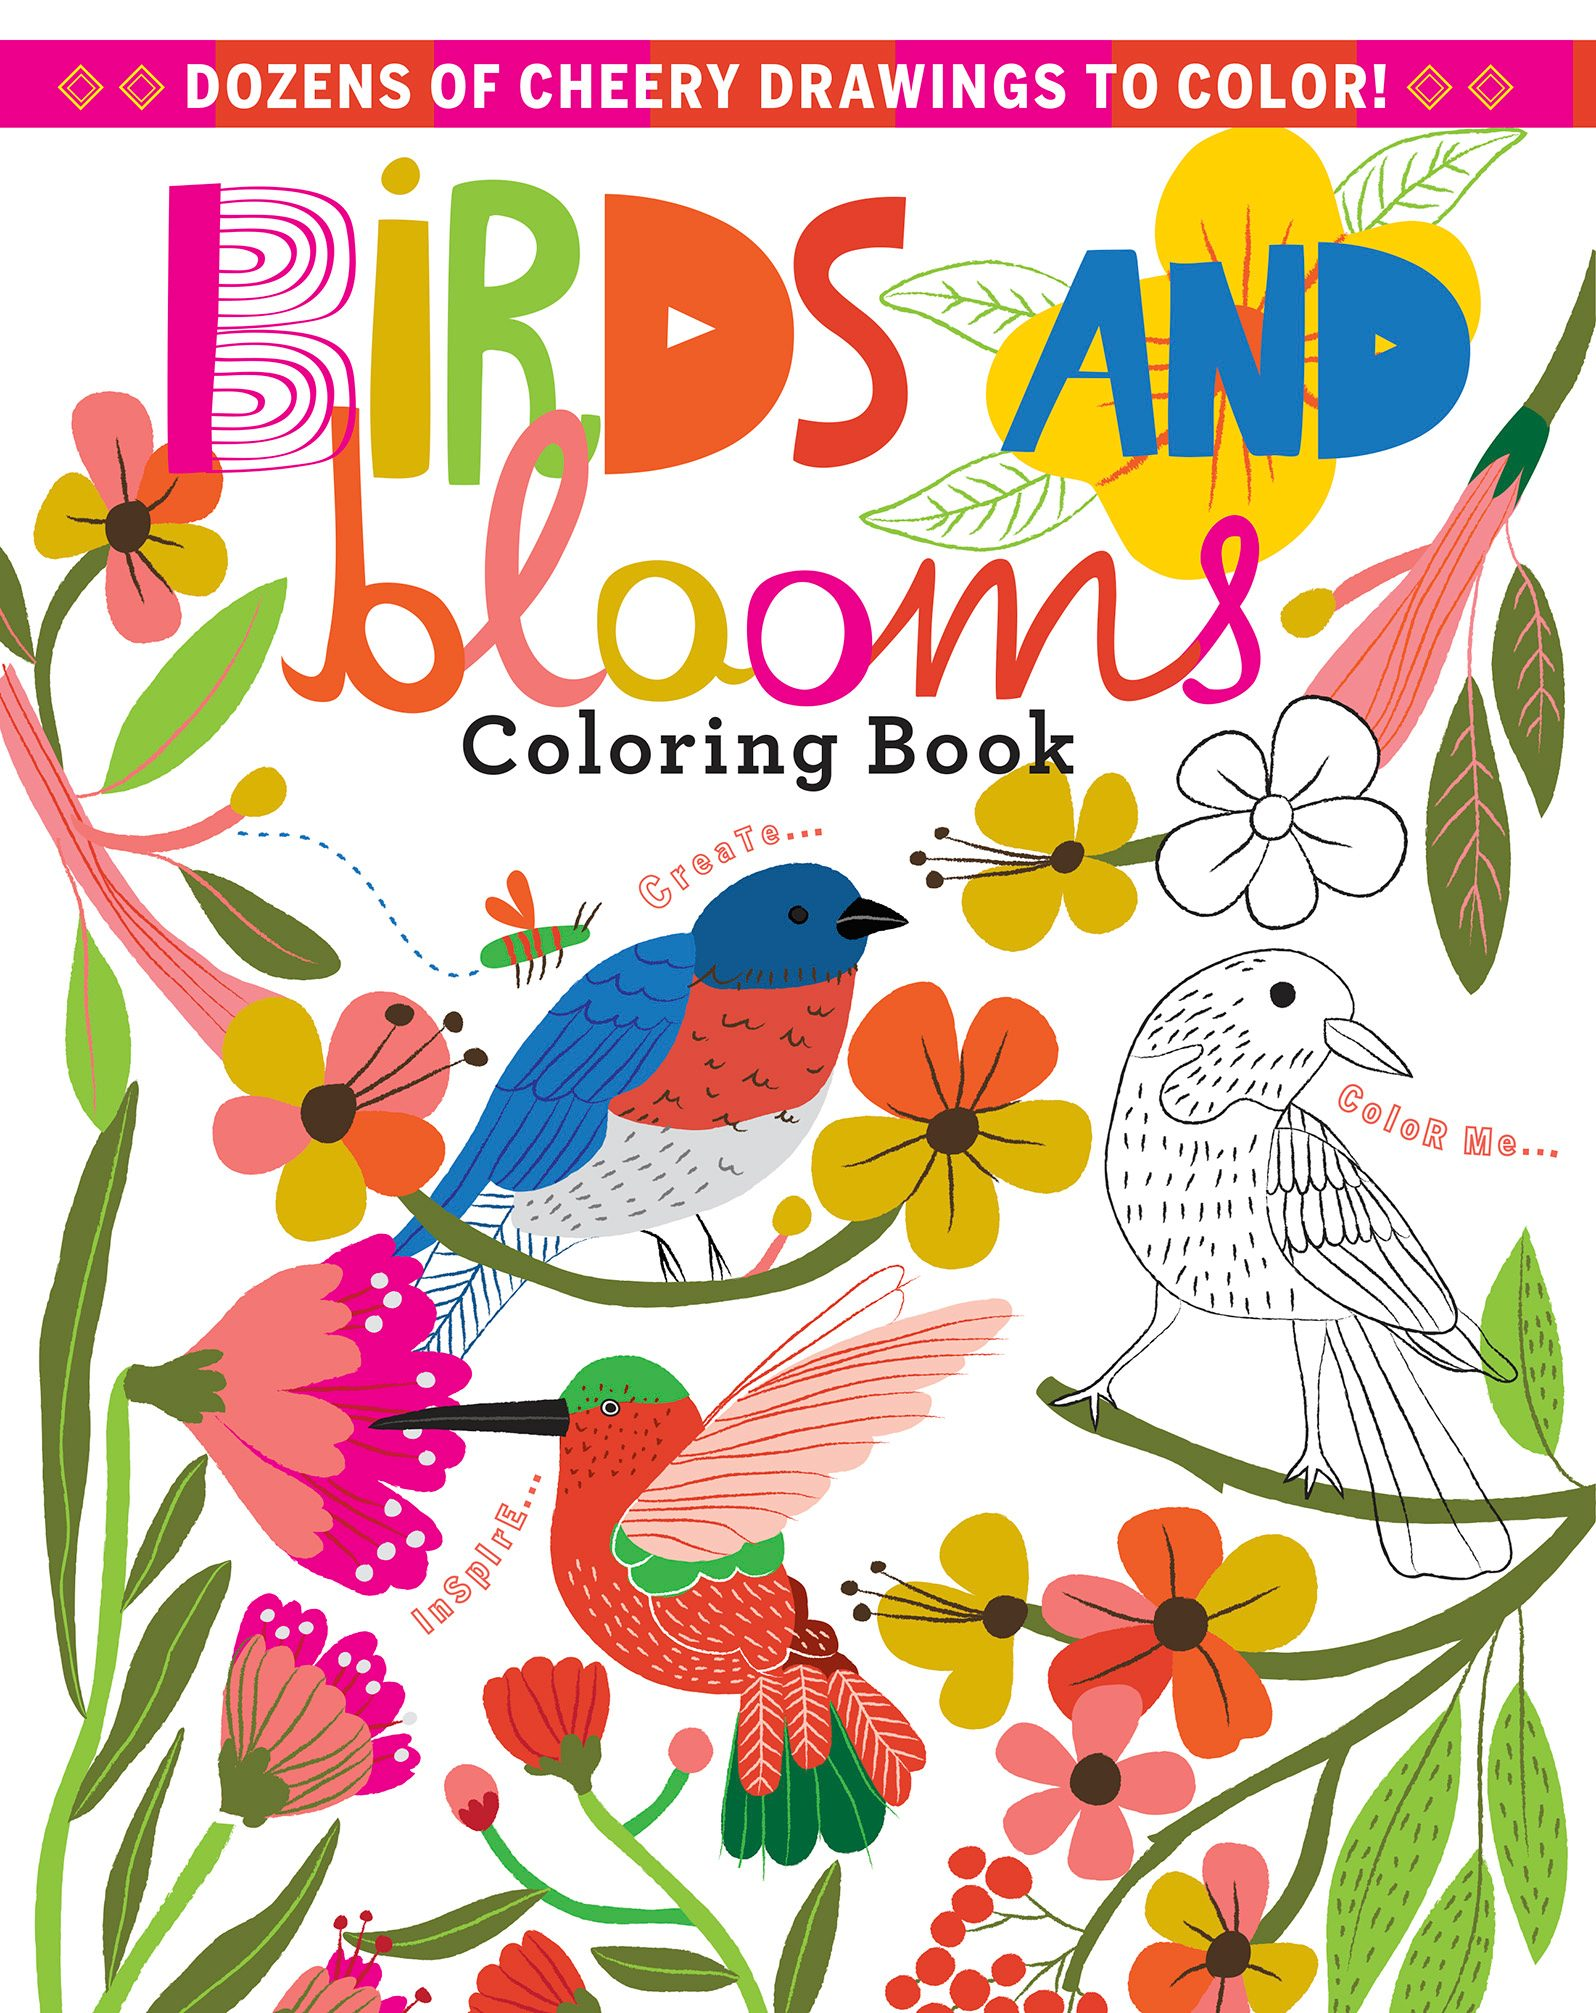 Find A Cozy Spot Near Your Favorite Backyard Window Grab Some Colored Pencils And Settle In With Our Bright Upbeat Birds Blooms Coloring Book